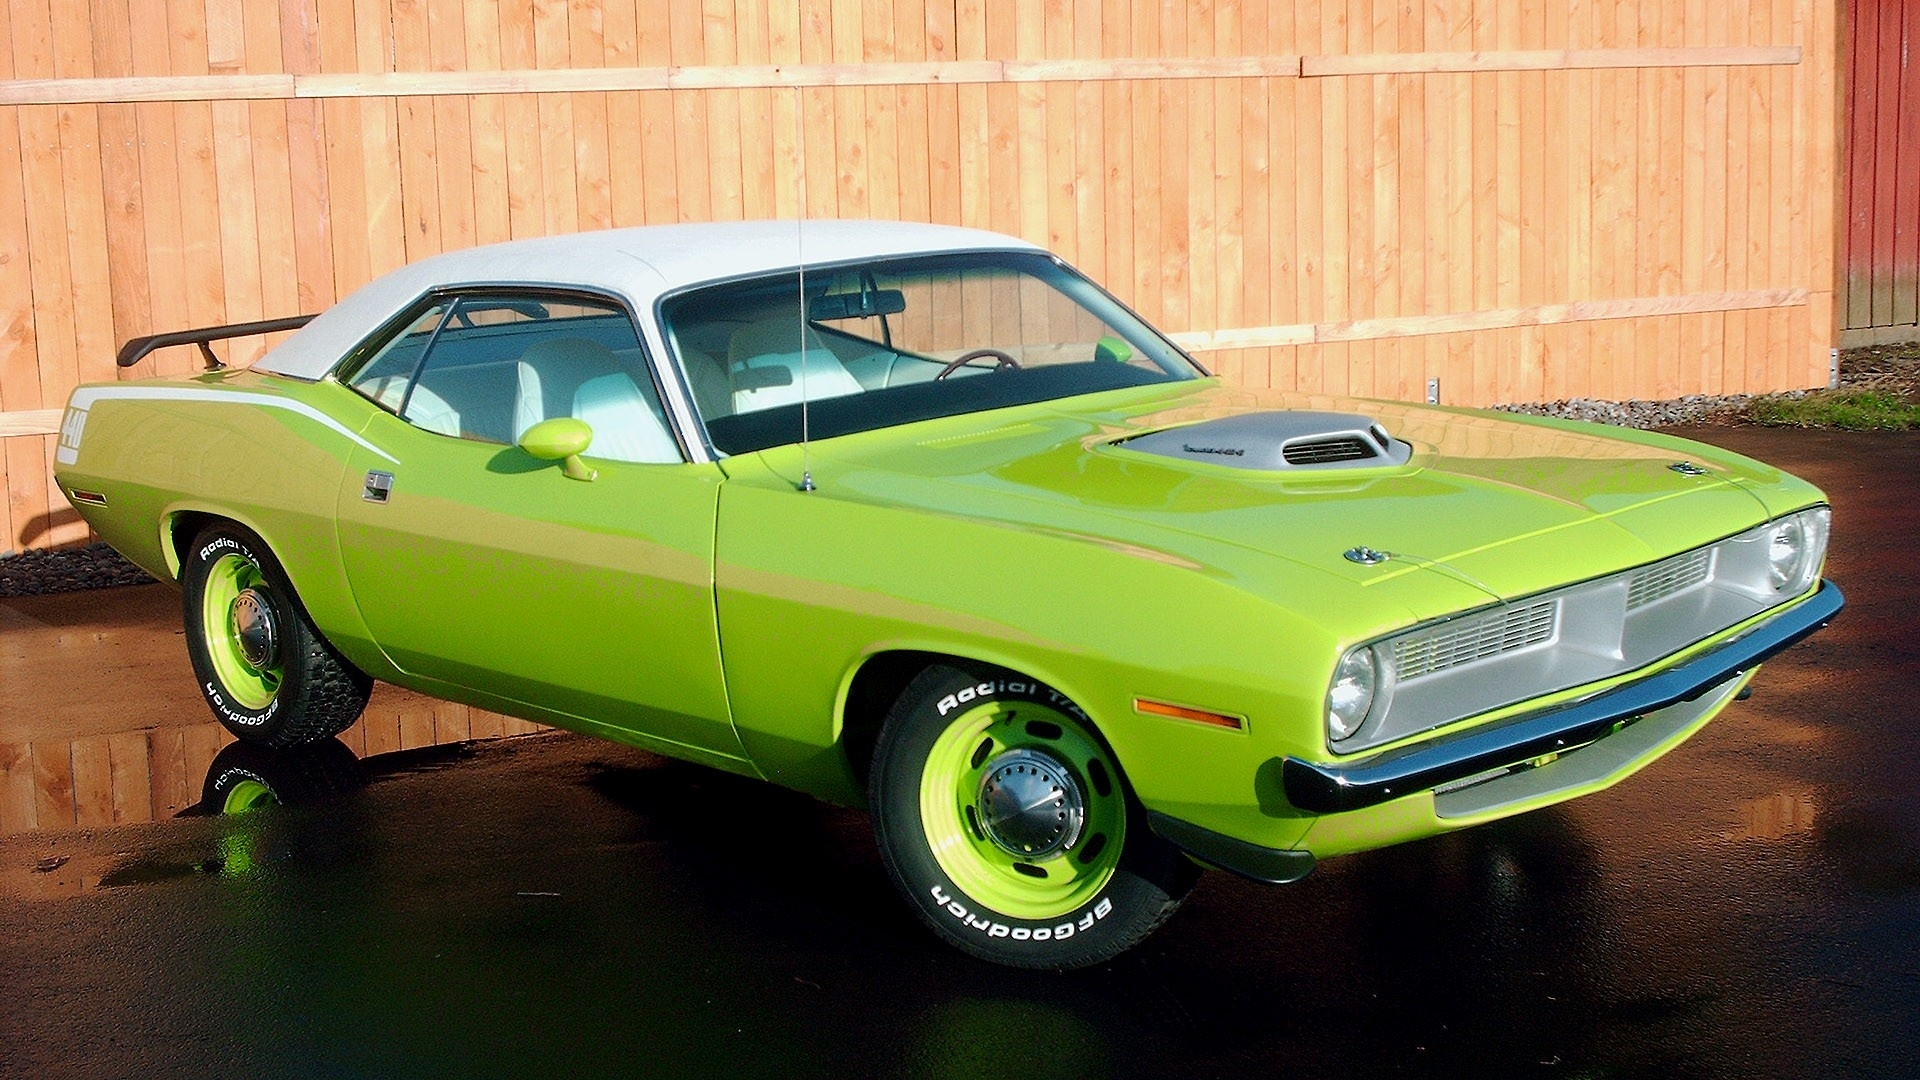 Muscle Cars Usa Plymouth Barracuda Classic Vehicles Auto Old Retro